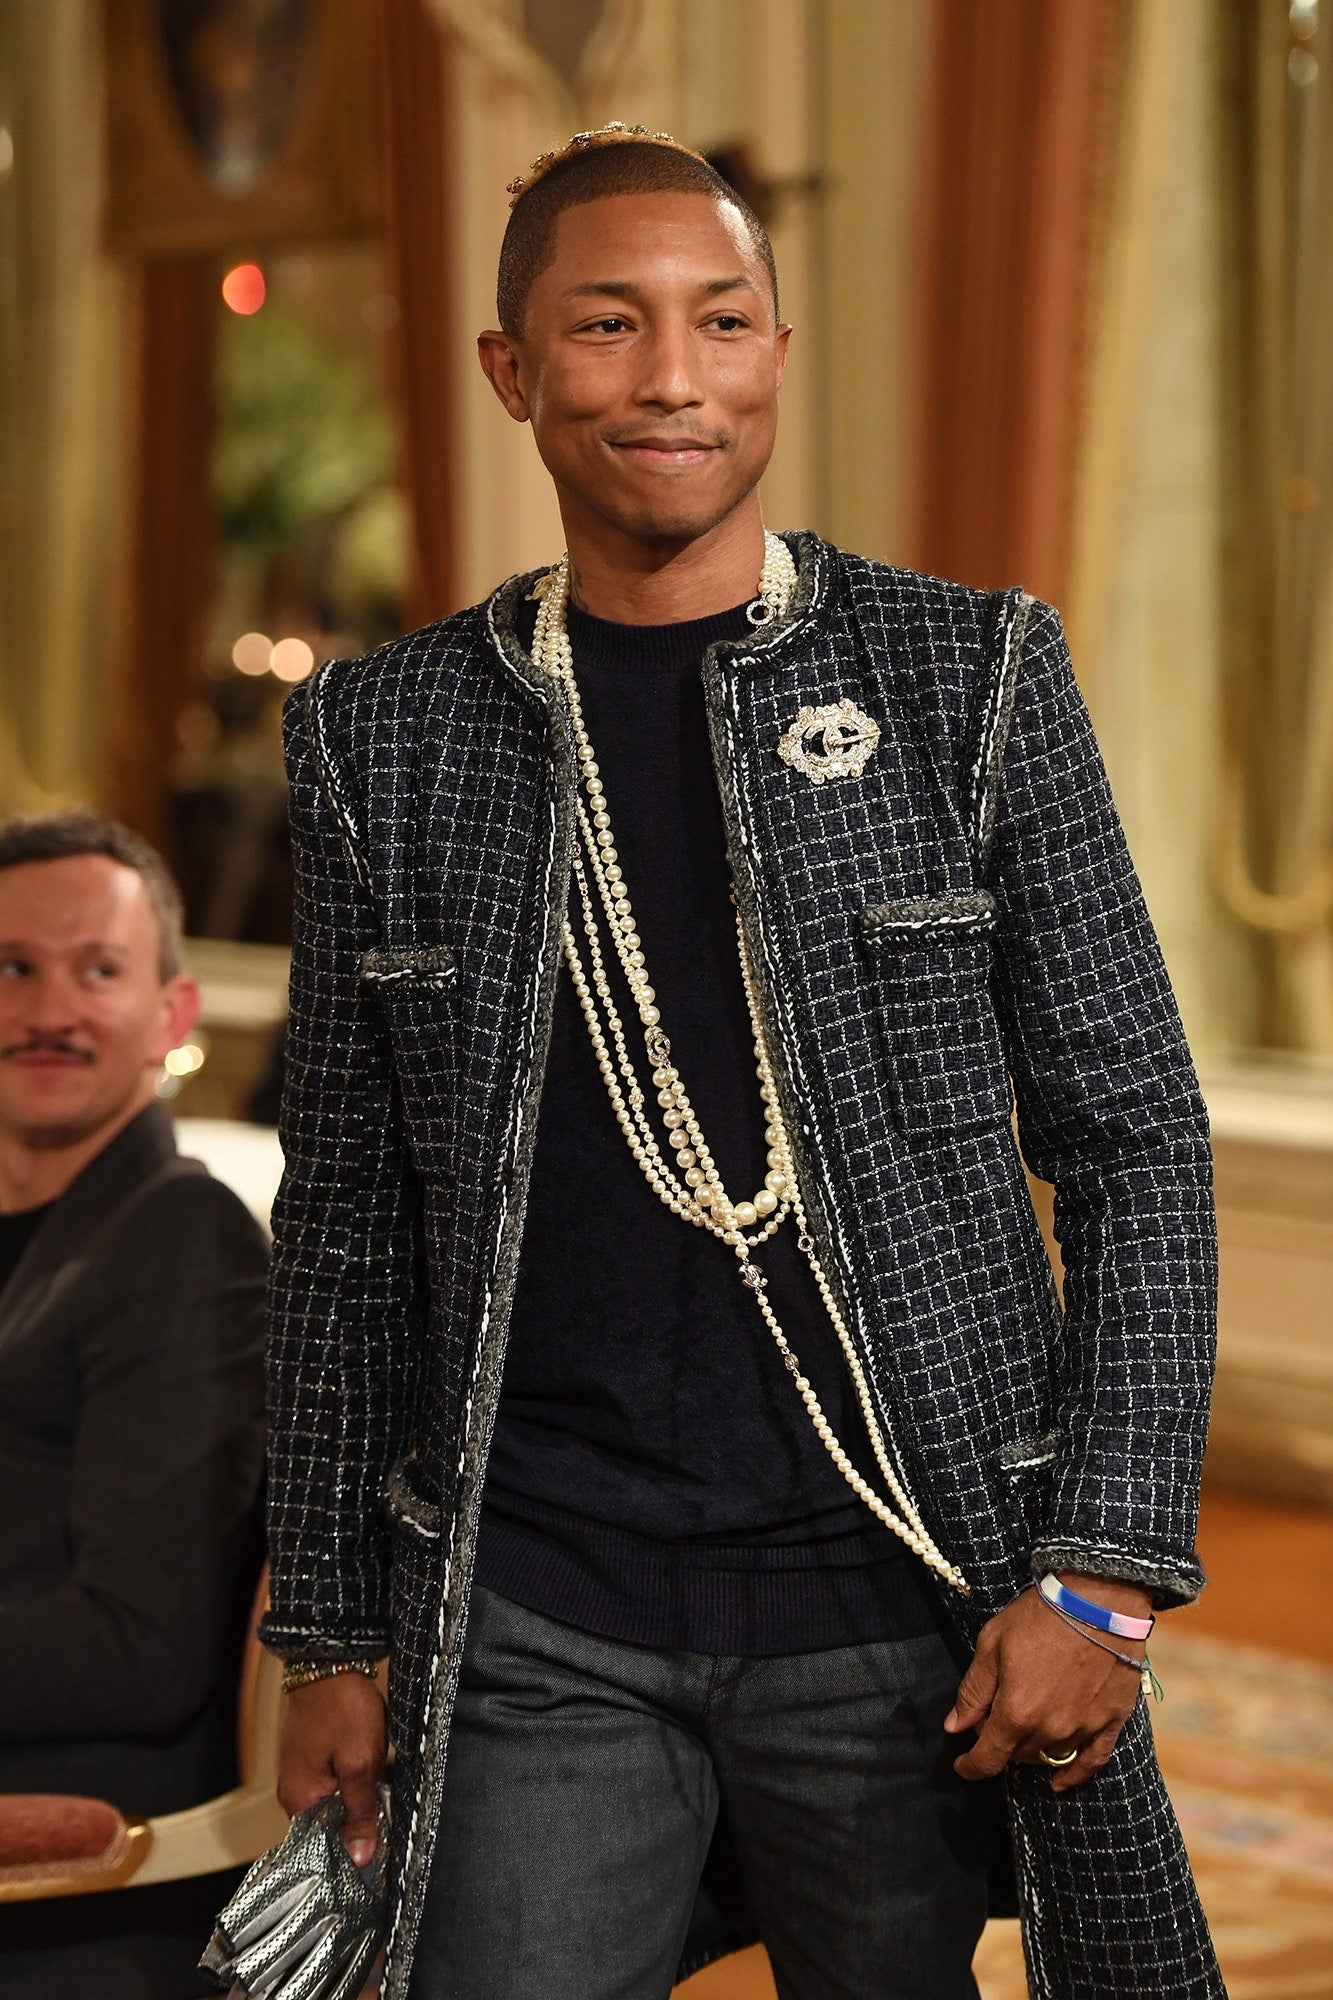 ic: Pharrell Williams at 2016 Chanel Métiers d'Art wearing tweed jacket, pearl necklaces, dark cardigan and grey suit trousers. Source: Vanity Fair